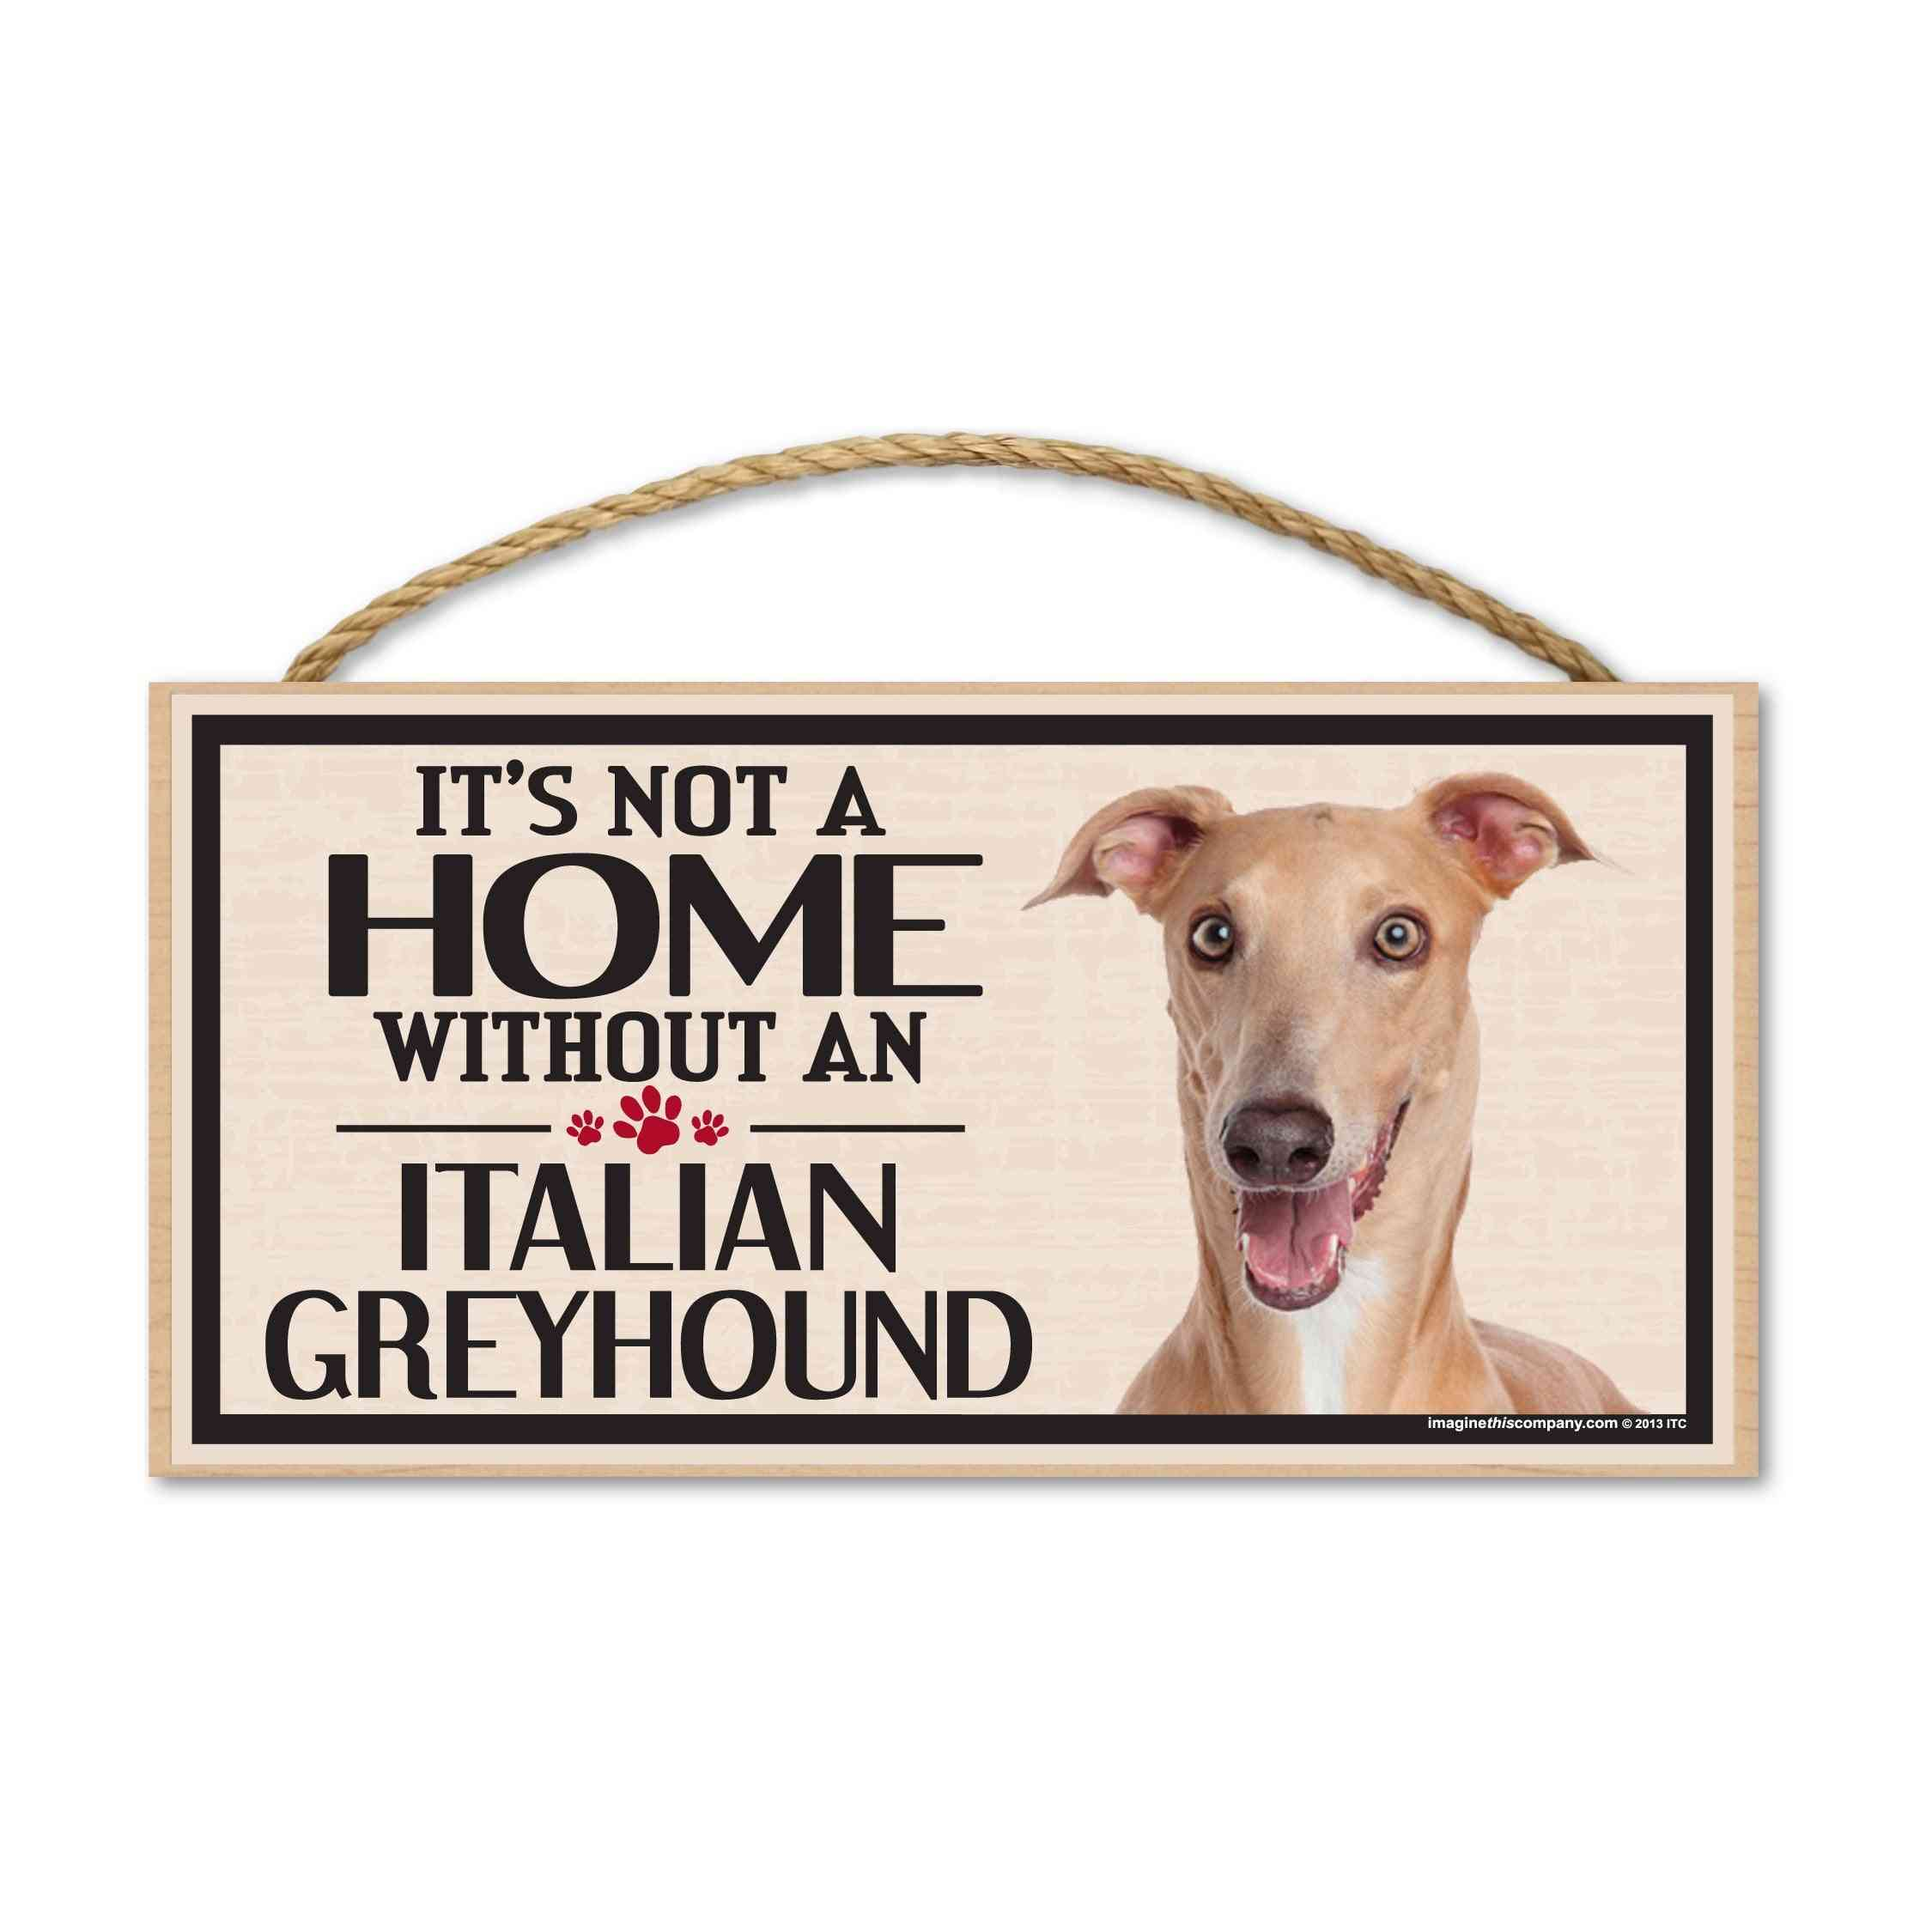 Sign, Wood, It's Not A Home Without An Italian Greyhound, 10